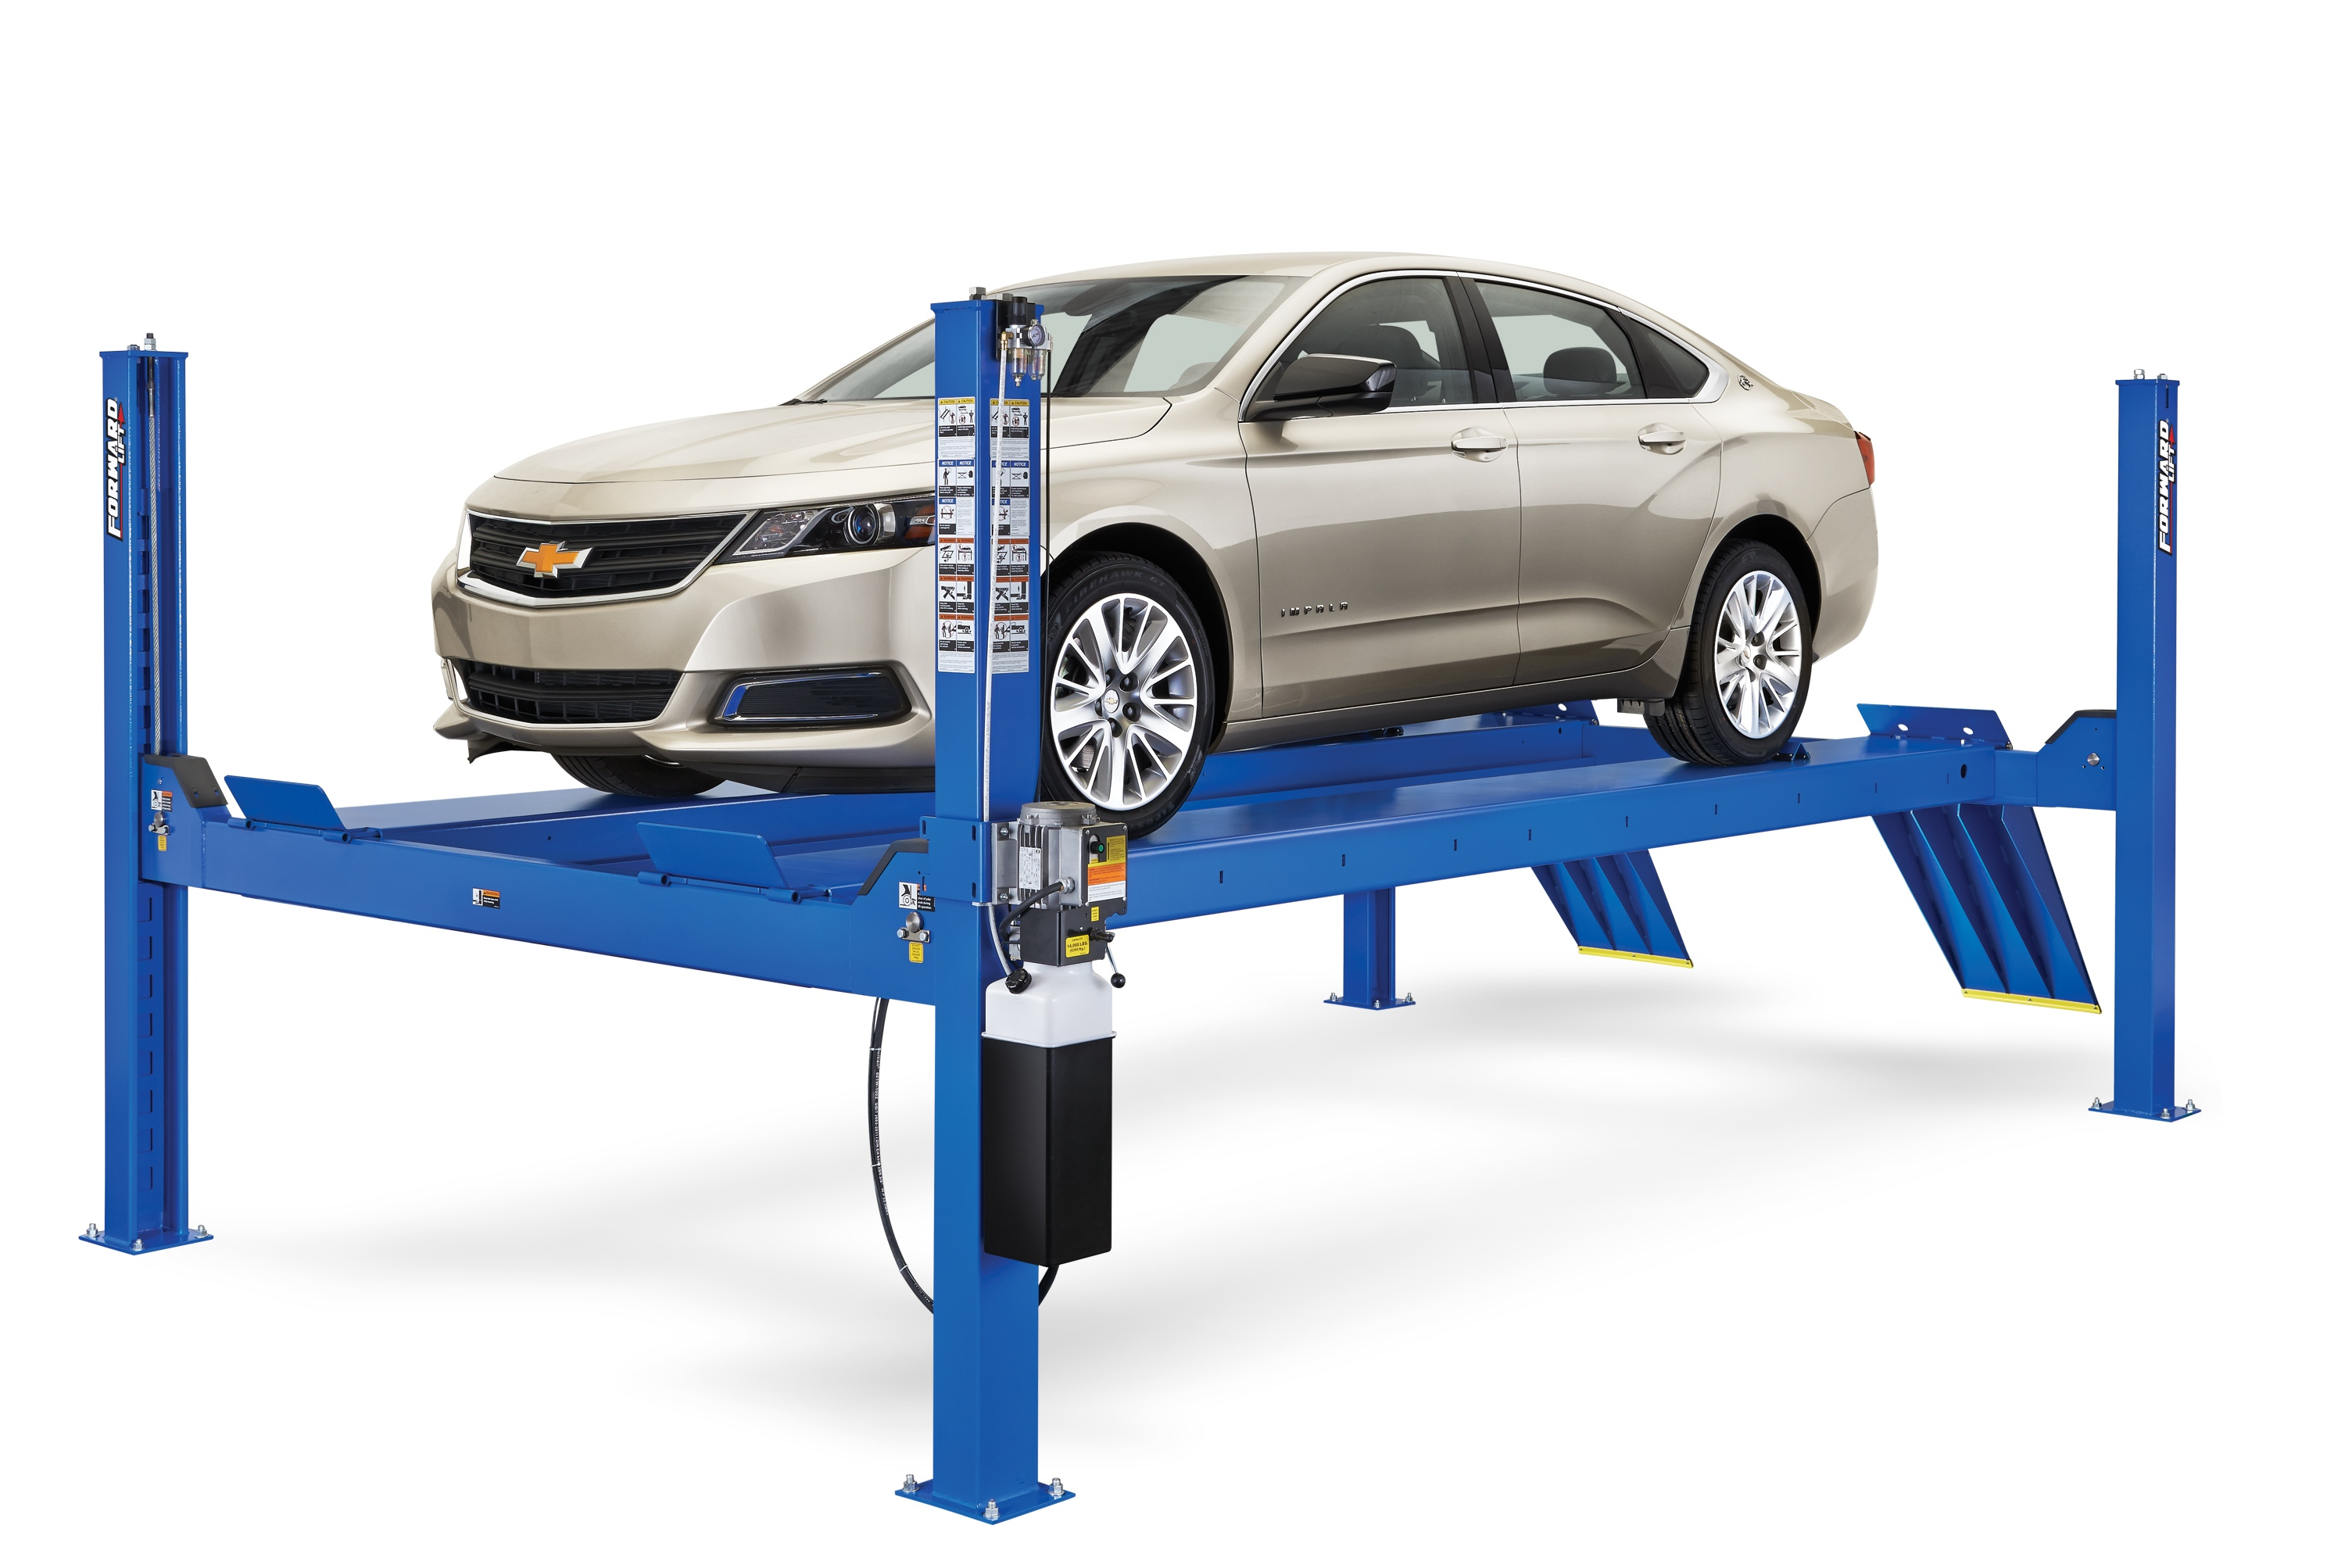 Redesigned Forward Lift CR14 four-post lift has higher rise and more durability